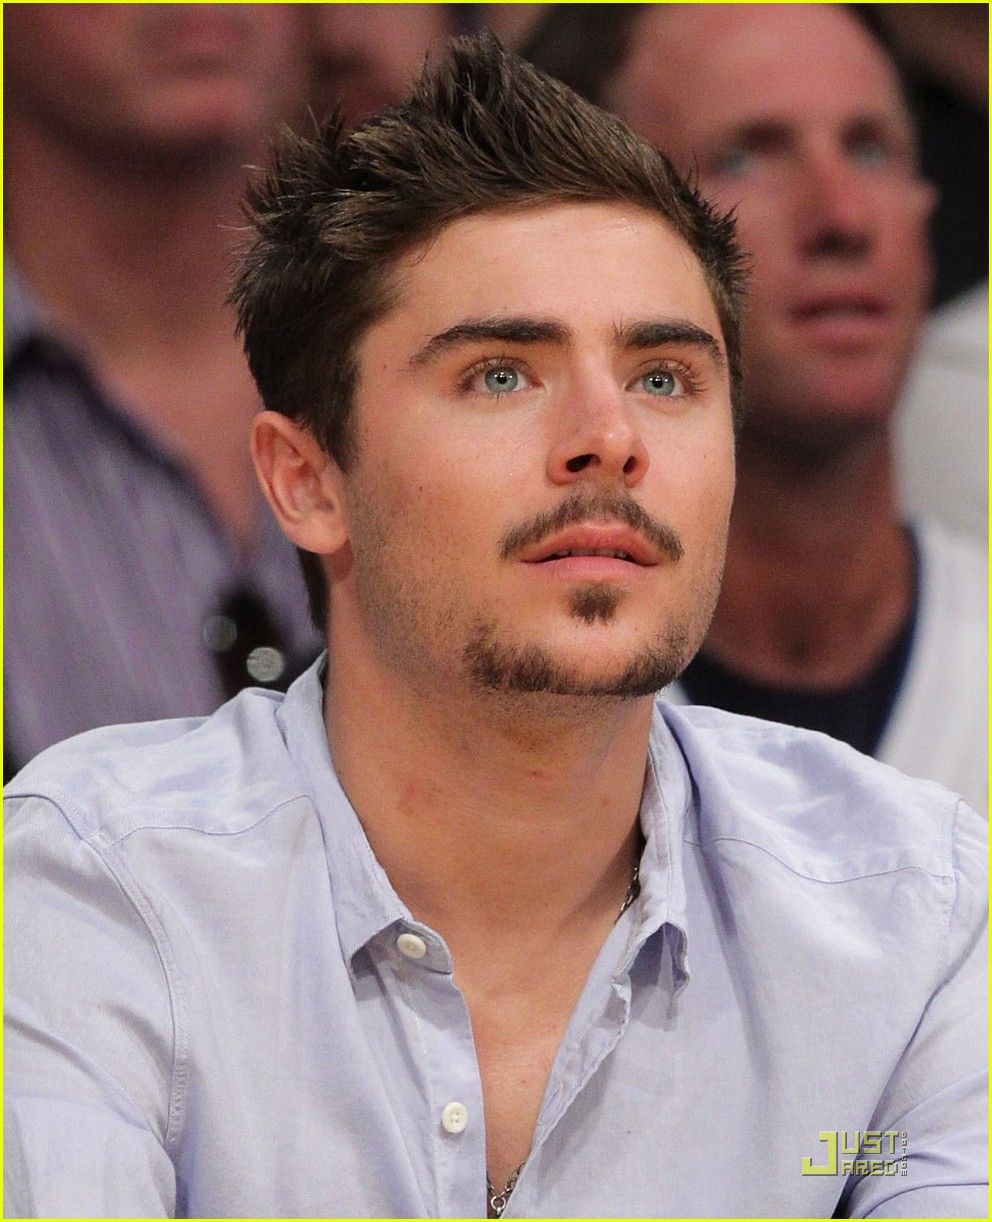 Zack Efron Mens Facial Hair Styles Goatee Styles Mustache Styles